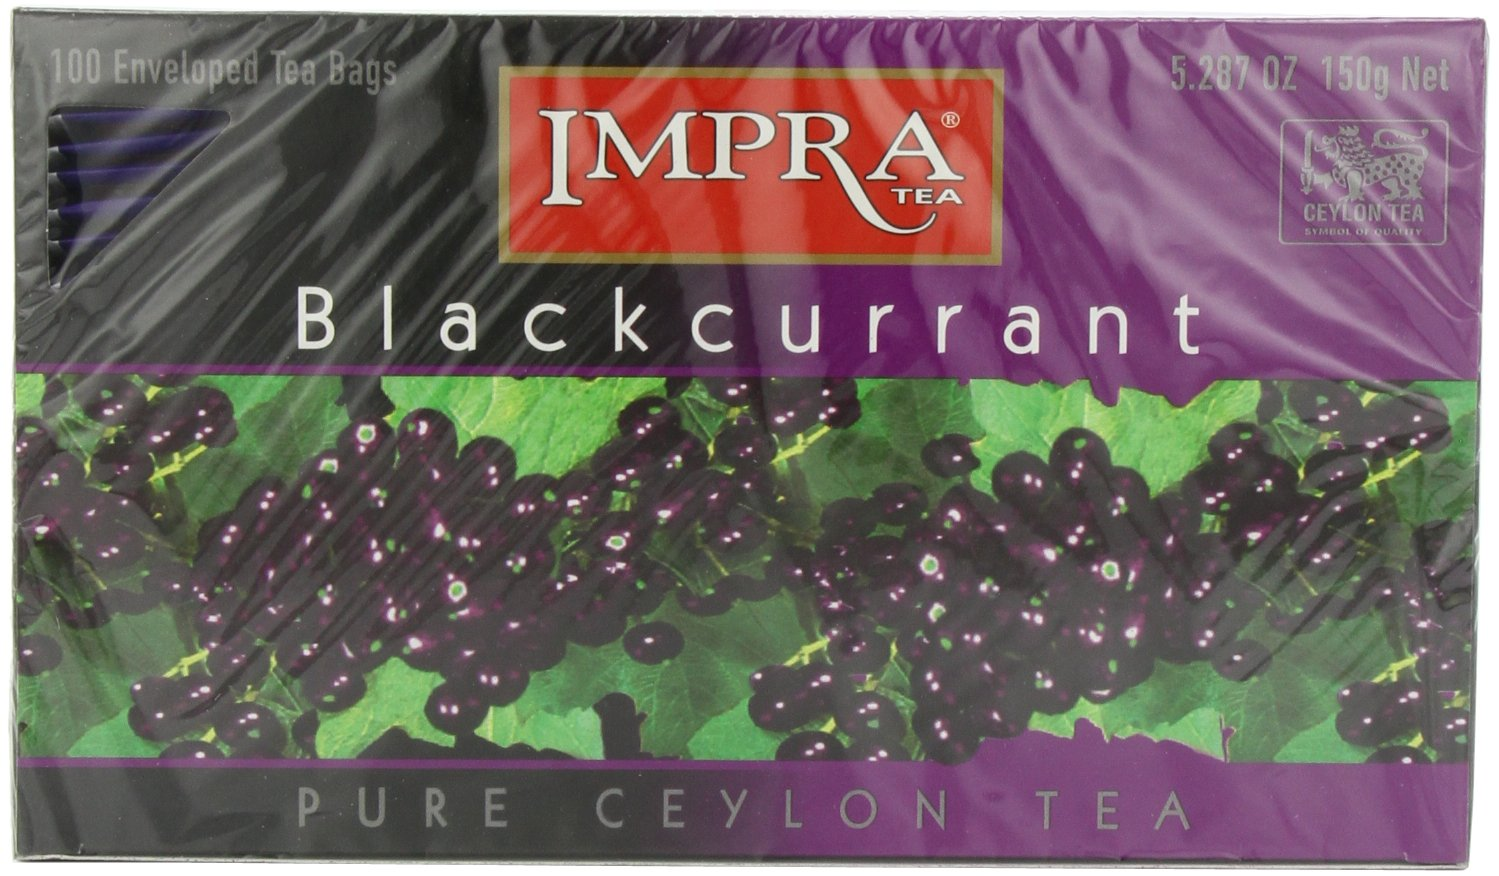 Impra Black Currant Tea, 100-Count Tea Bags (Pack of 6)